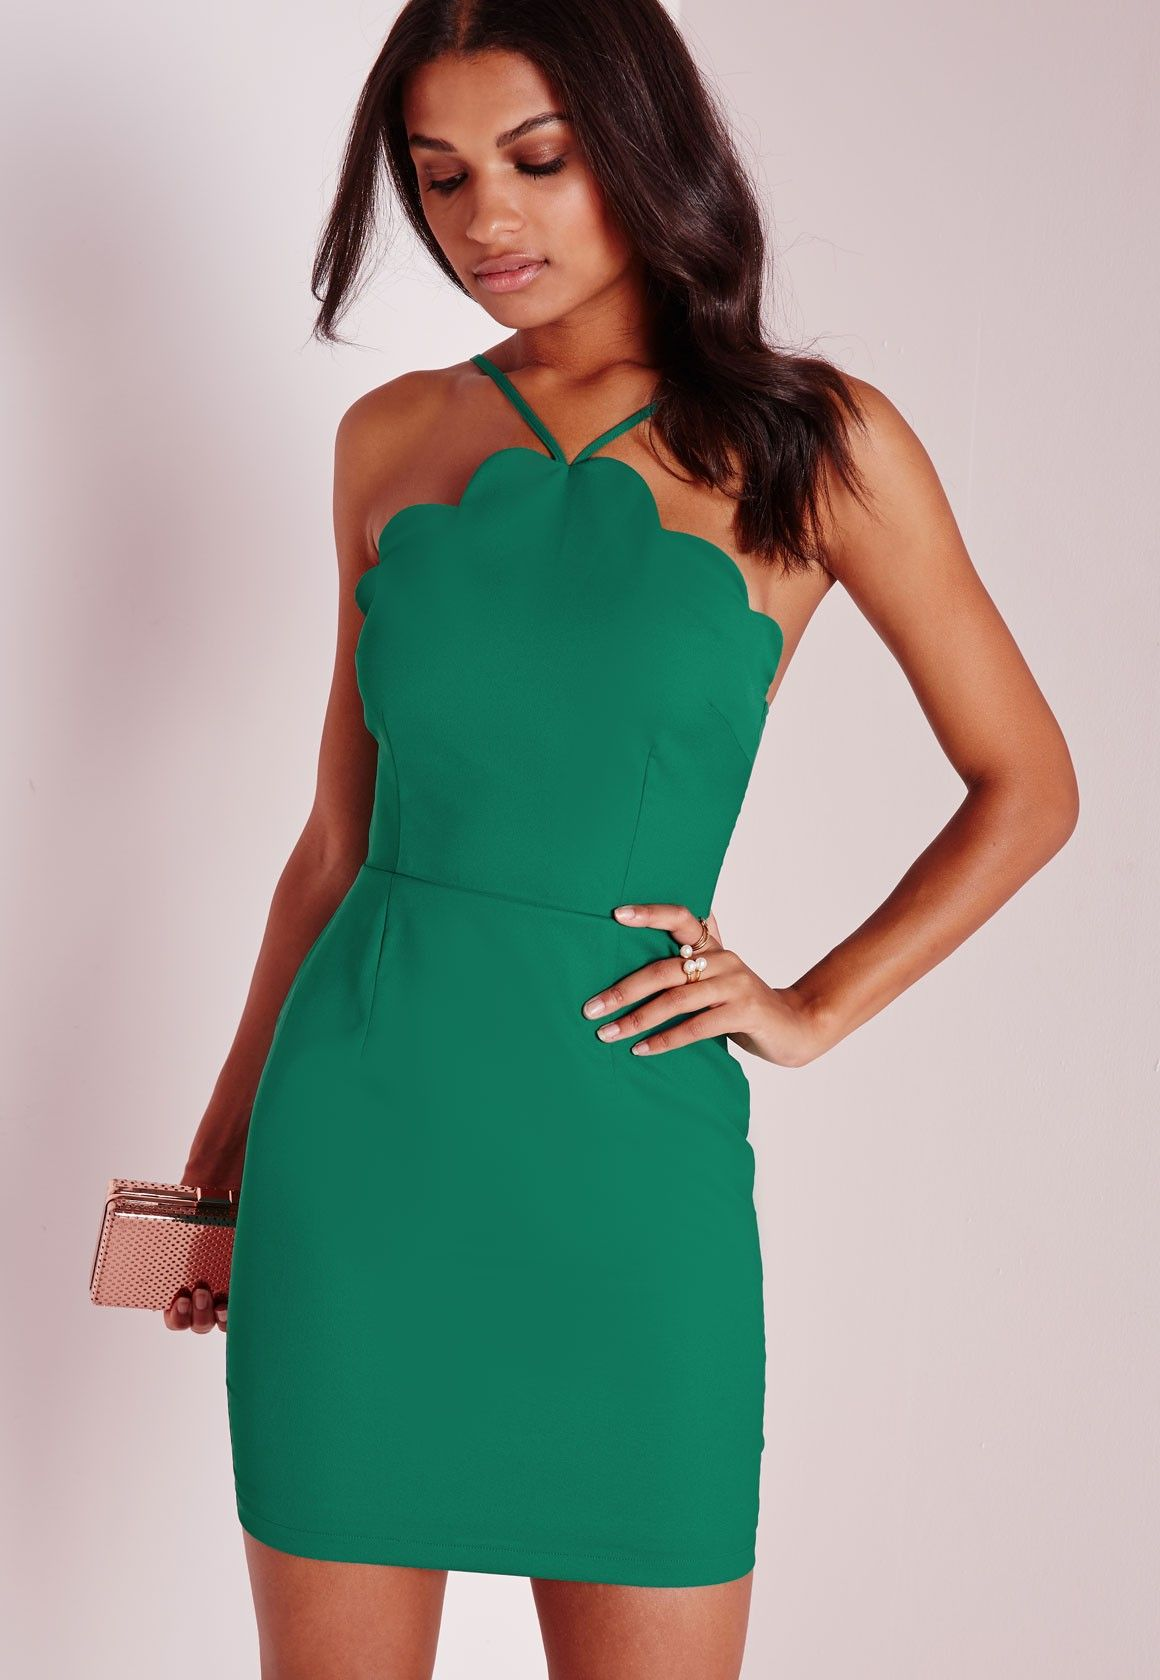 Missguided - Scallop Bodycon Dress Green | Wedding | Pinterest ...